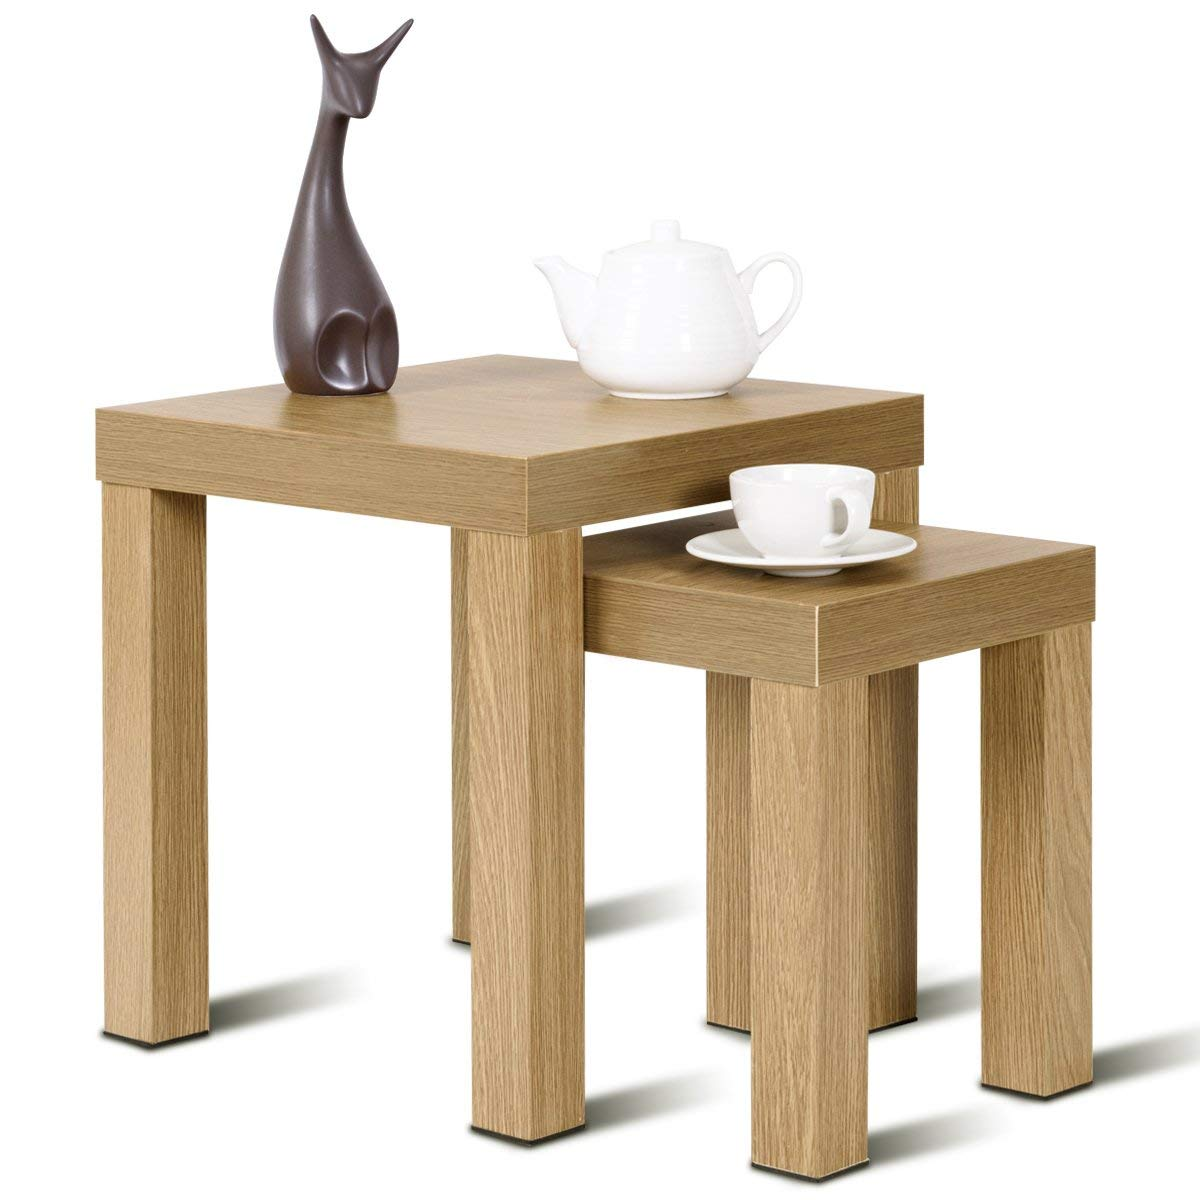 tree slab table find line wood accent get quotations giantex nesting end set color home kitchen decor casual style living room furniture decorators catalog leick computer desk